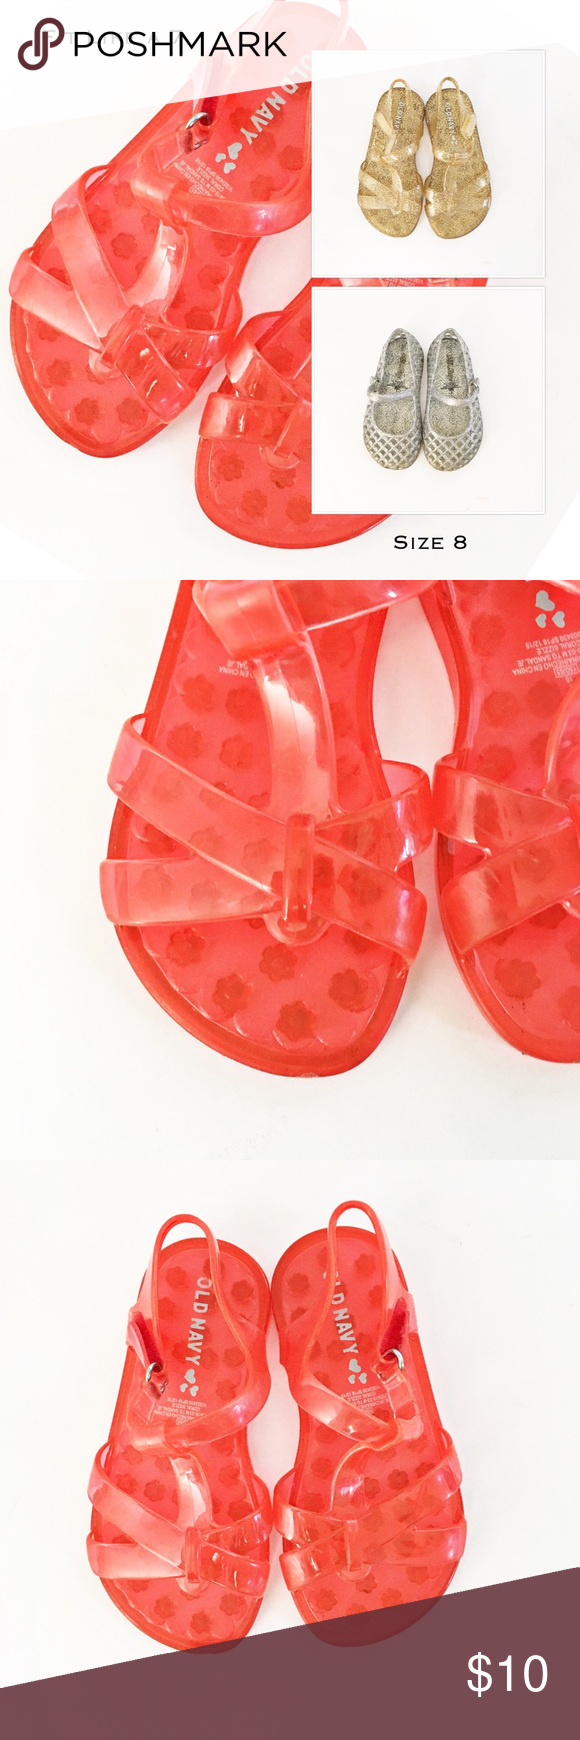 73fbef51e66f 3 Pairs of Jelly Shoes Three pair of jellies. One coral and one gold pair  of strappy jelly sandals